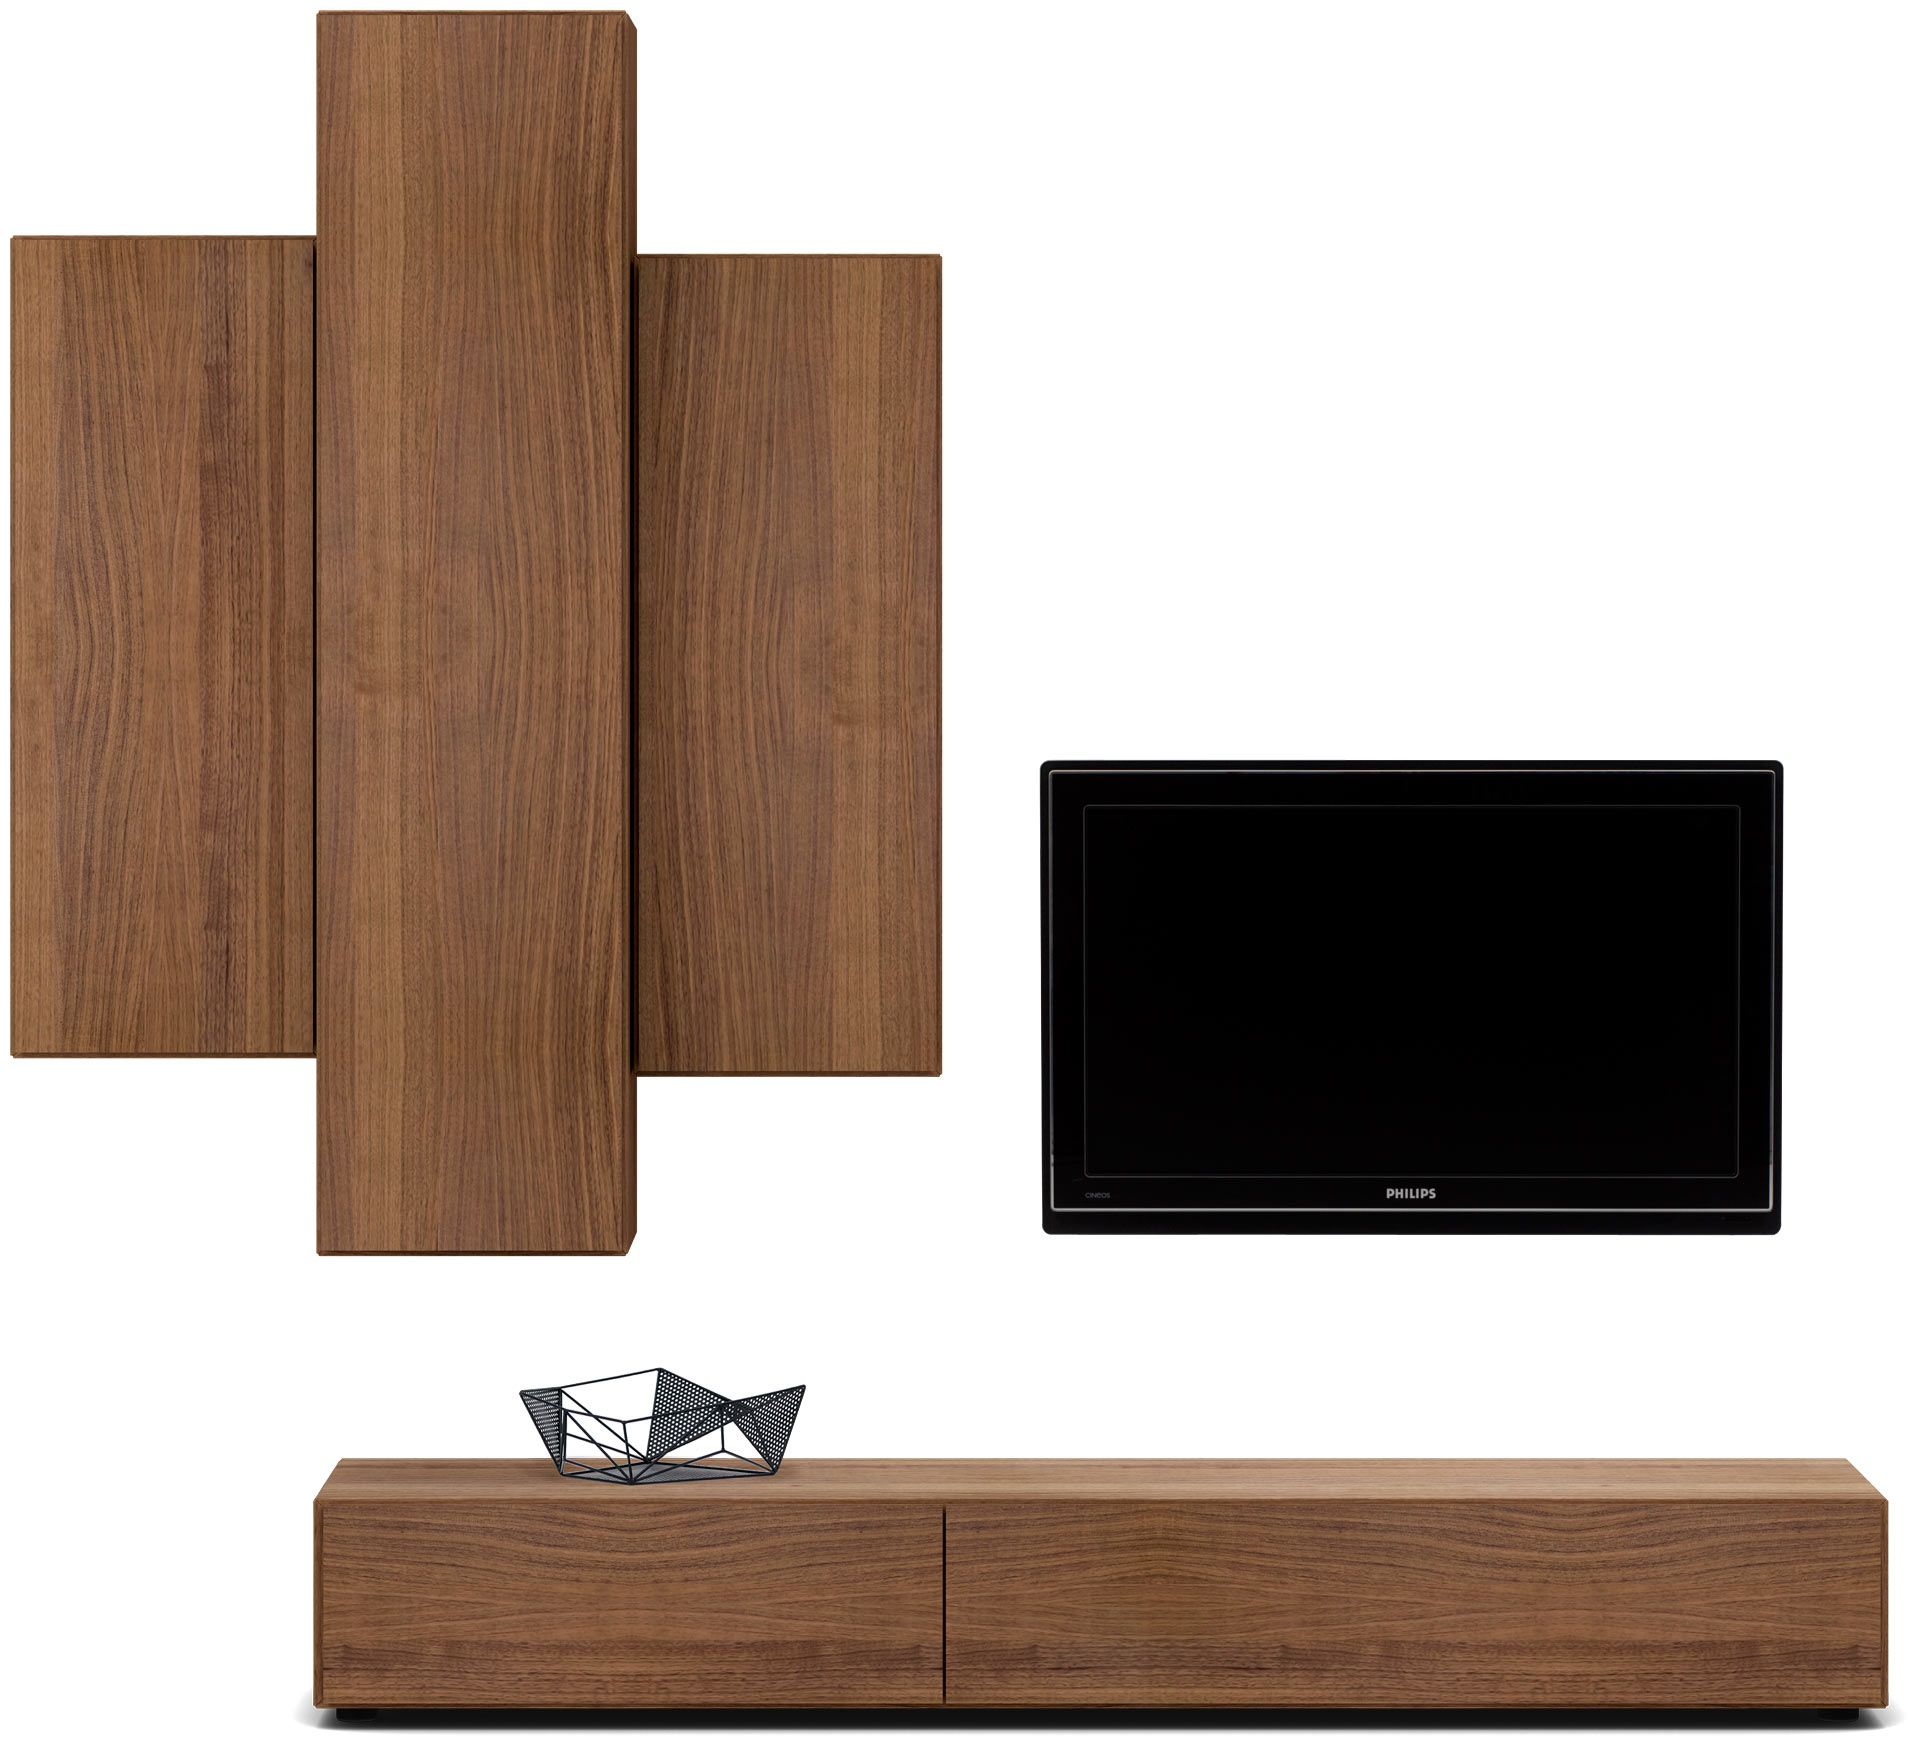 meuble tv boconcept meubles de design d 39 inspiration pour la t l vision et d. Black Bedroom Furniture Sets. Home Design Ideas